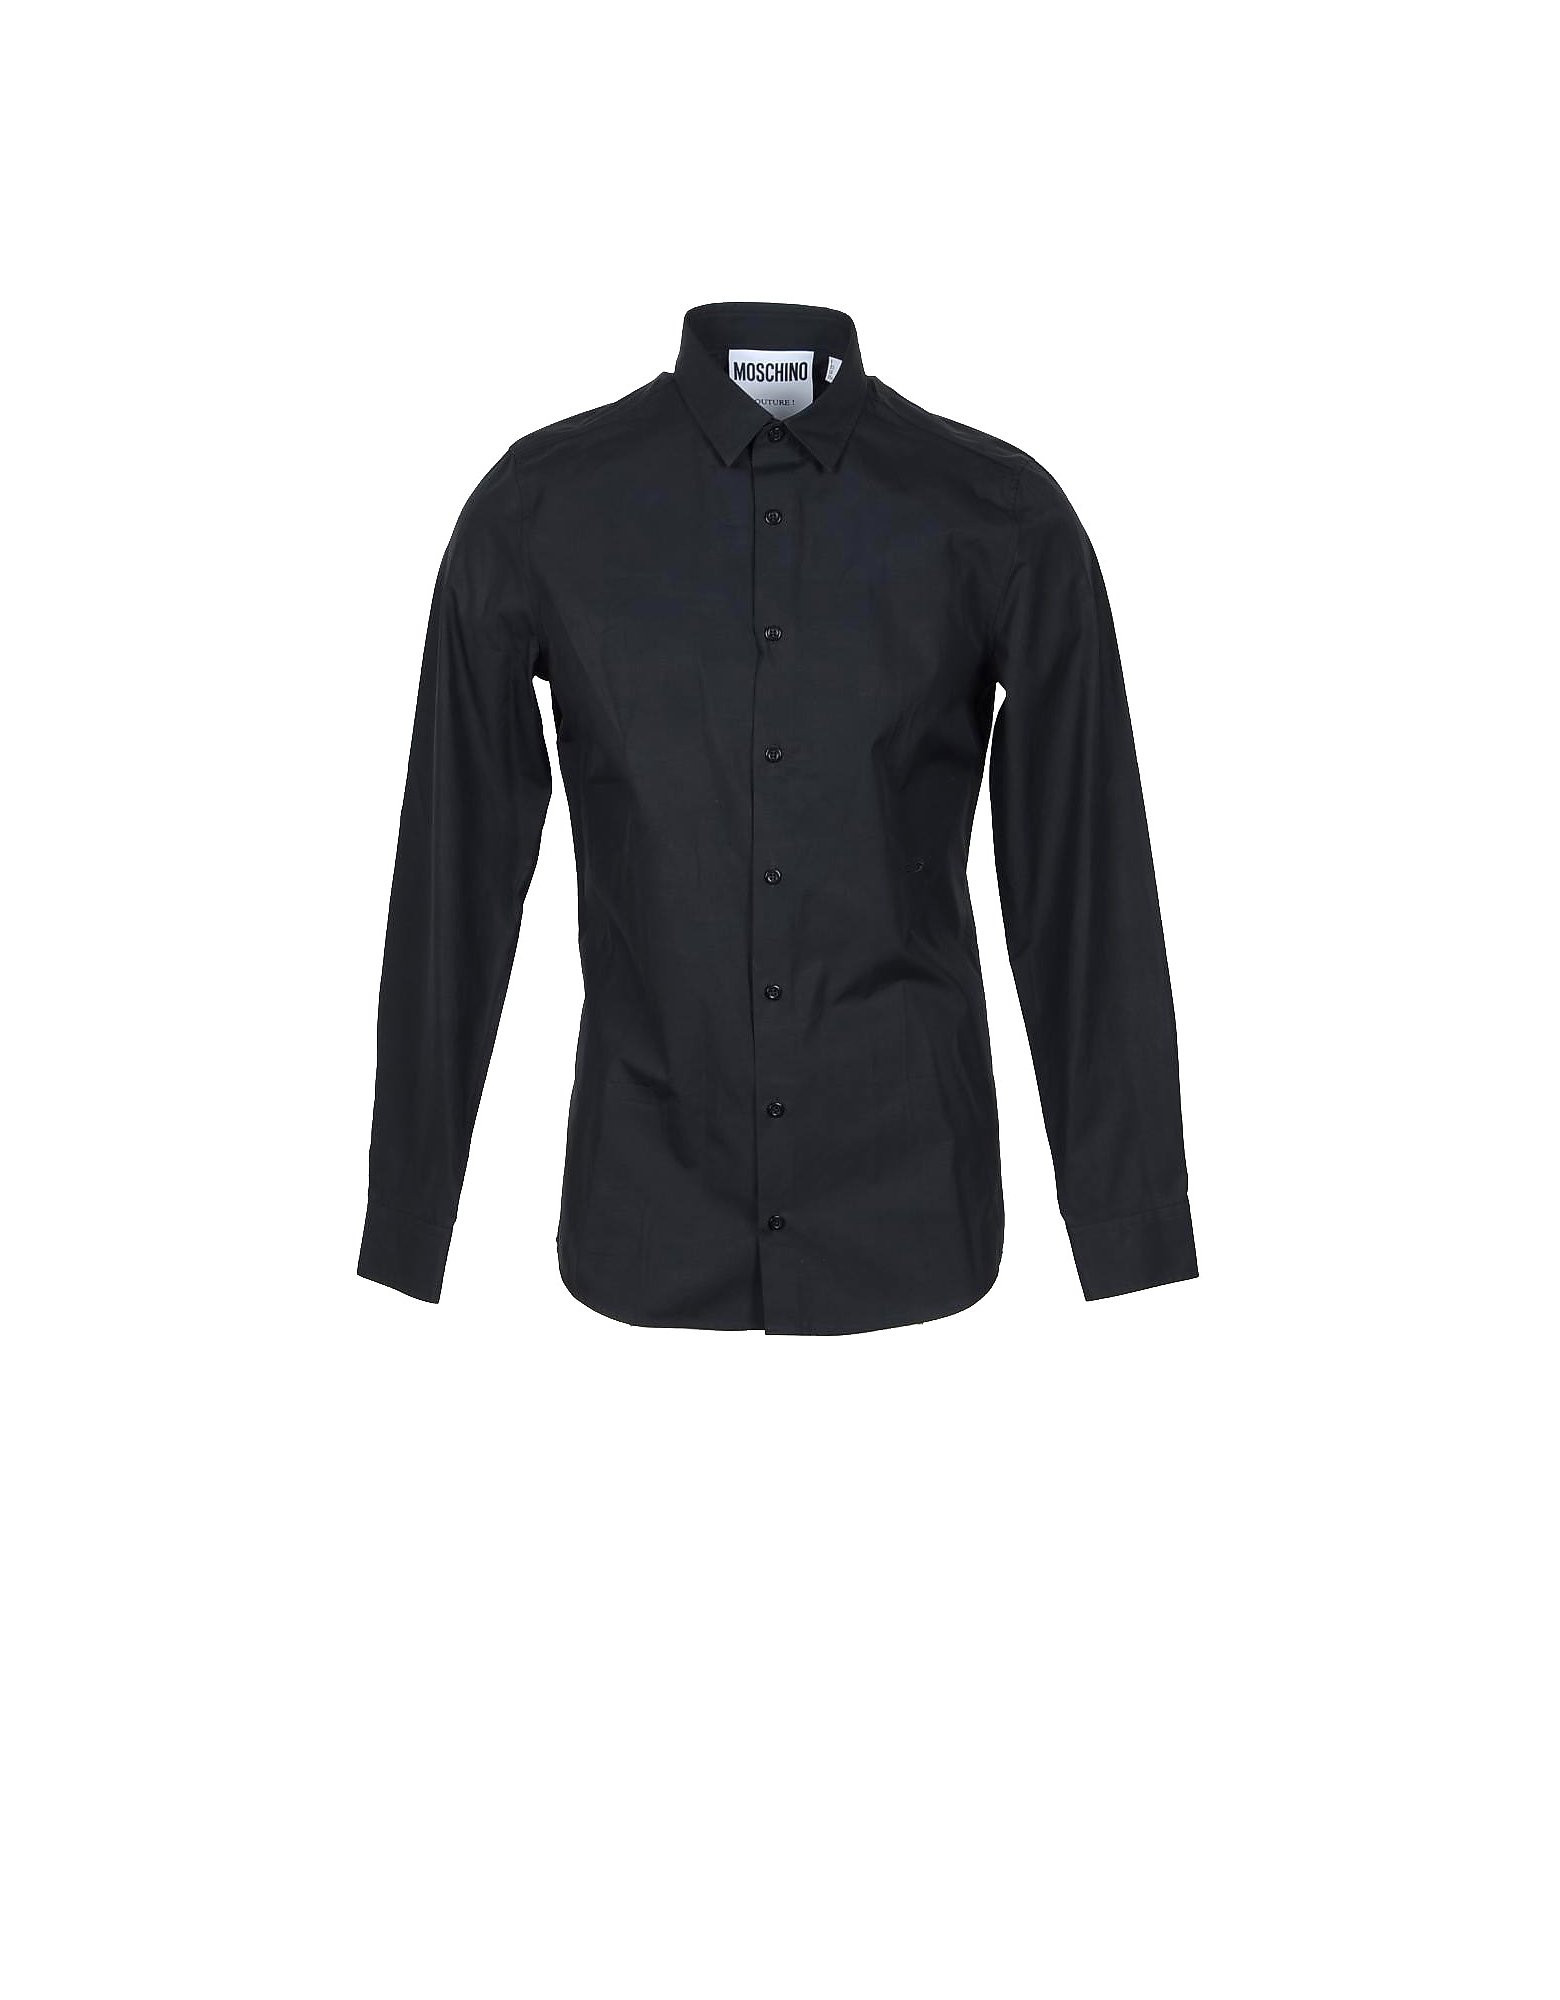 Moschino Designer Shirts, Safety Pin Embroidered Black Cotton Men's Dress Shirt